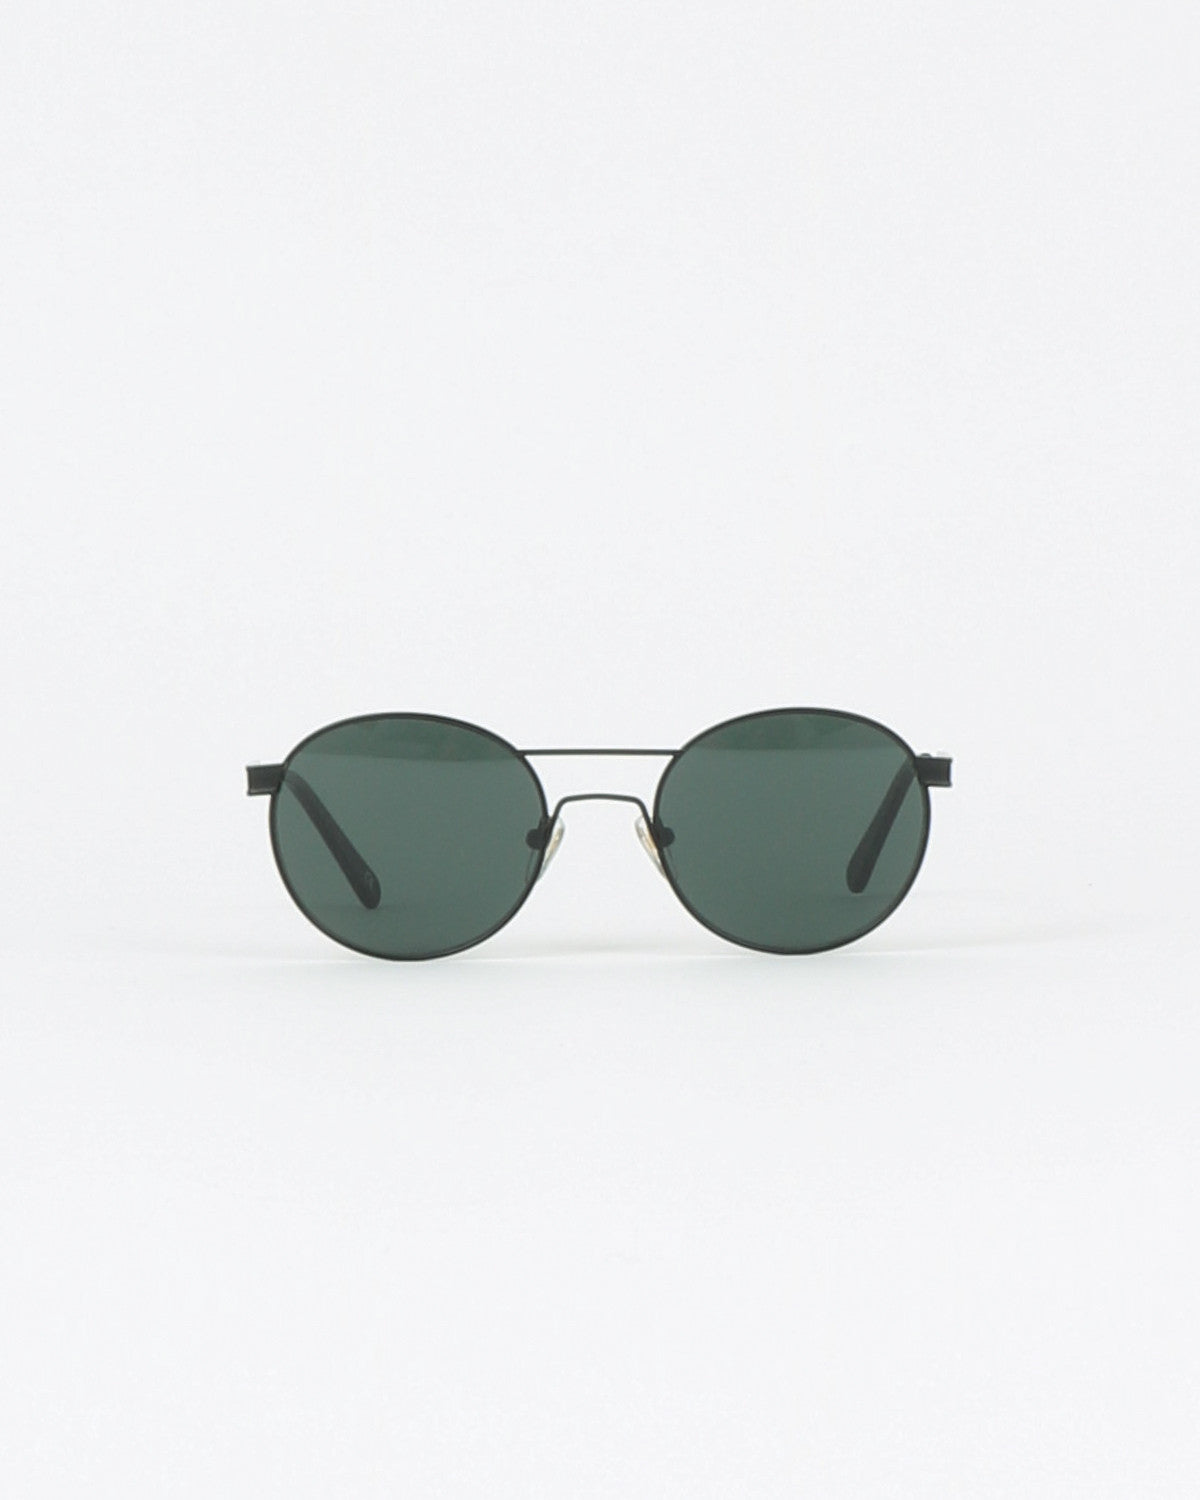 han kjobenhavn_green sunglasses_black matt_view_4_4